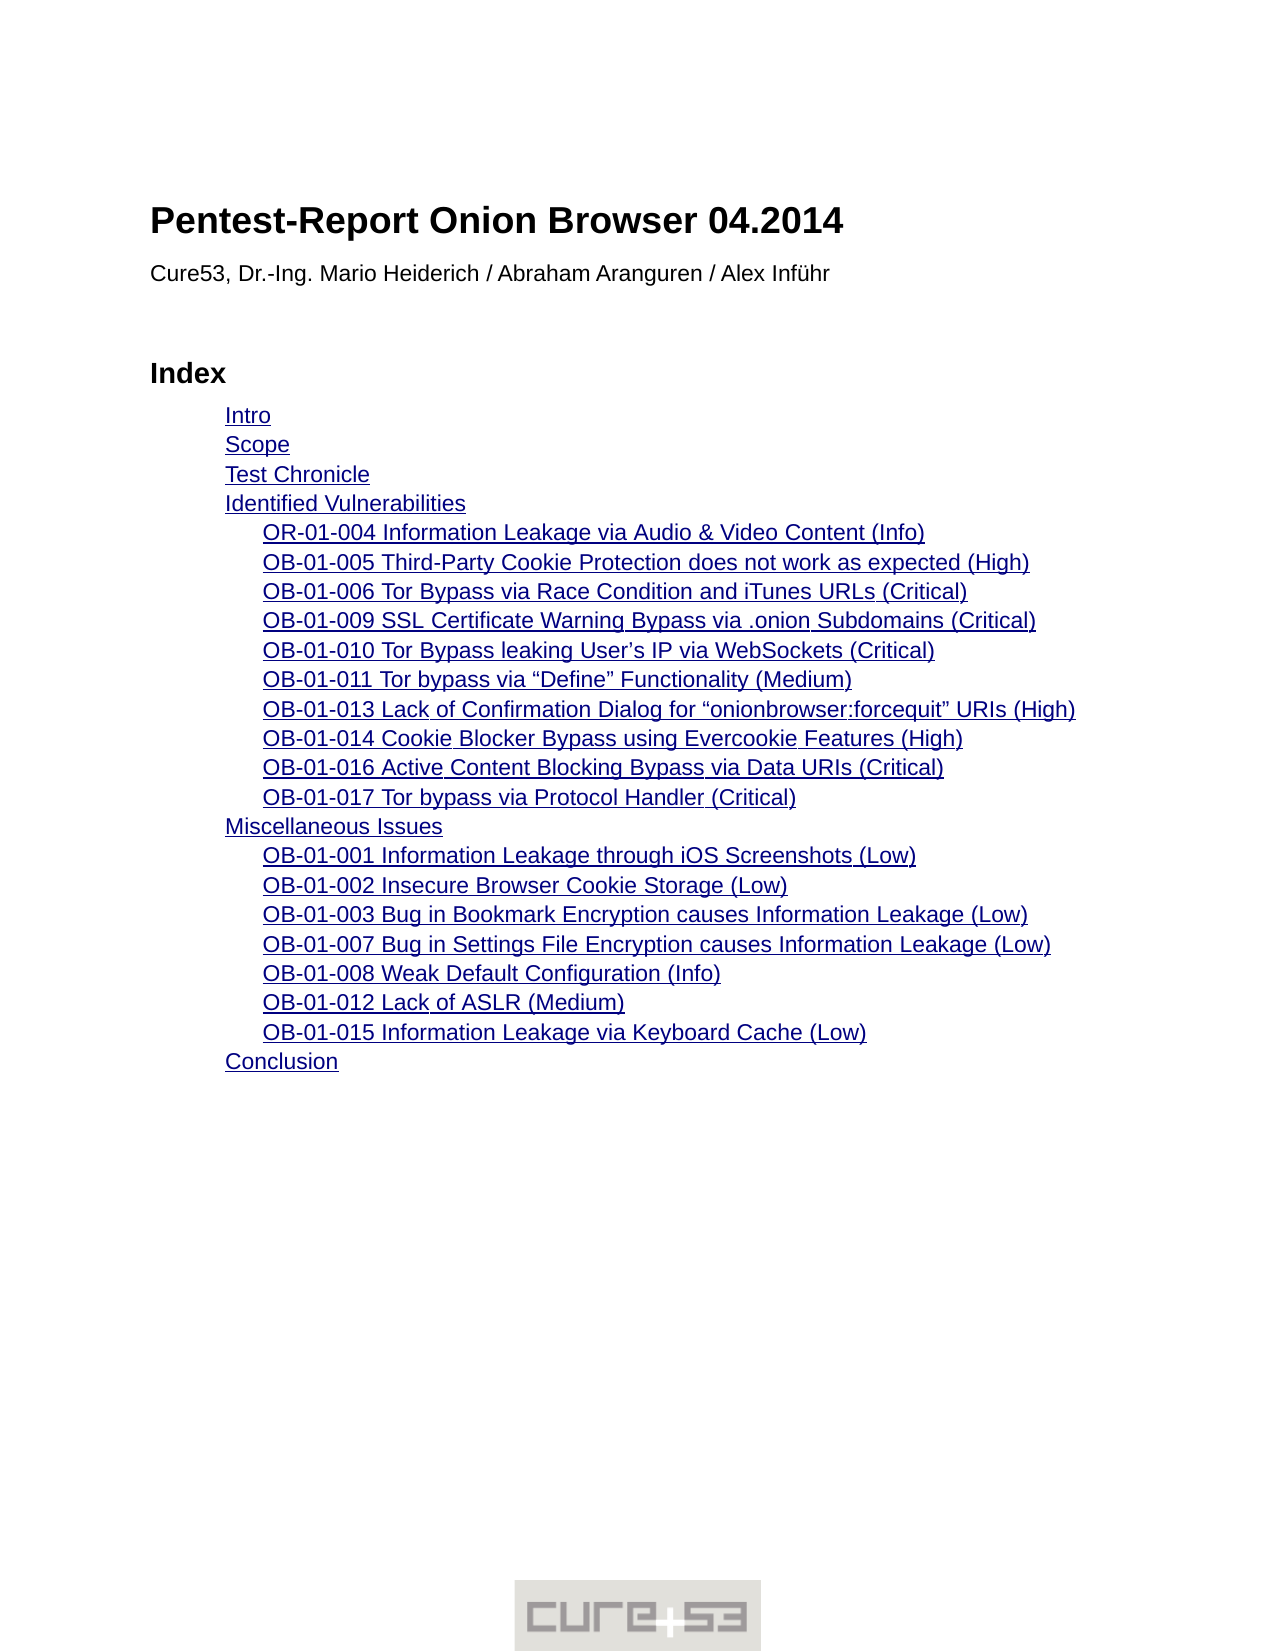 First page of the 'pentest-report onion-browser' PDF